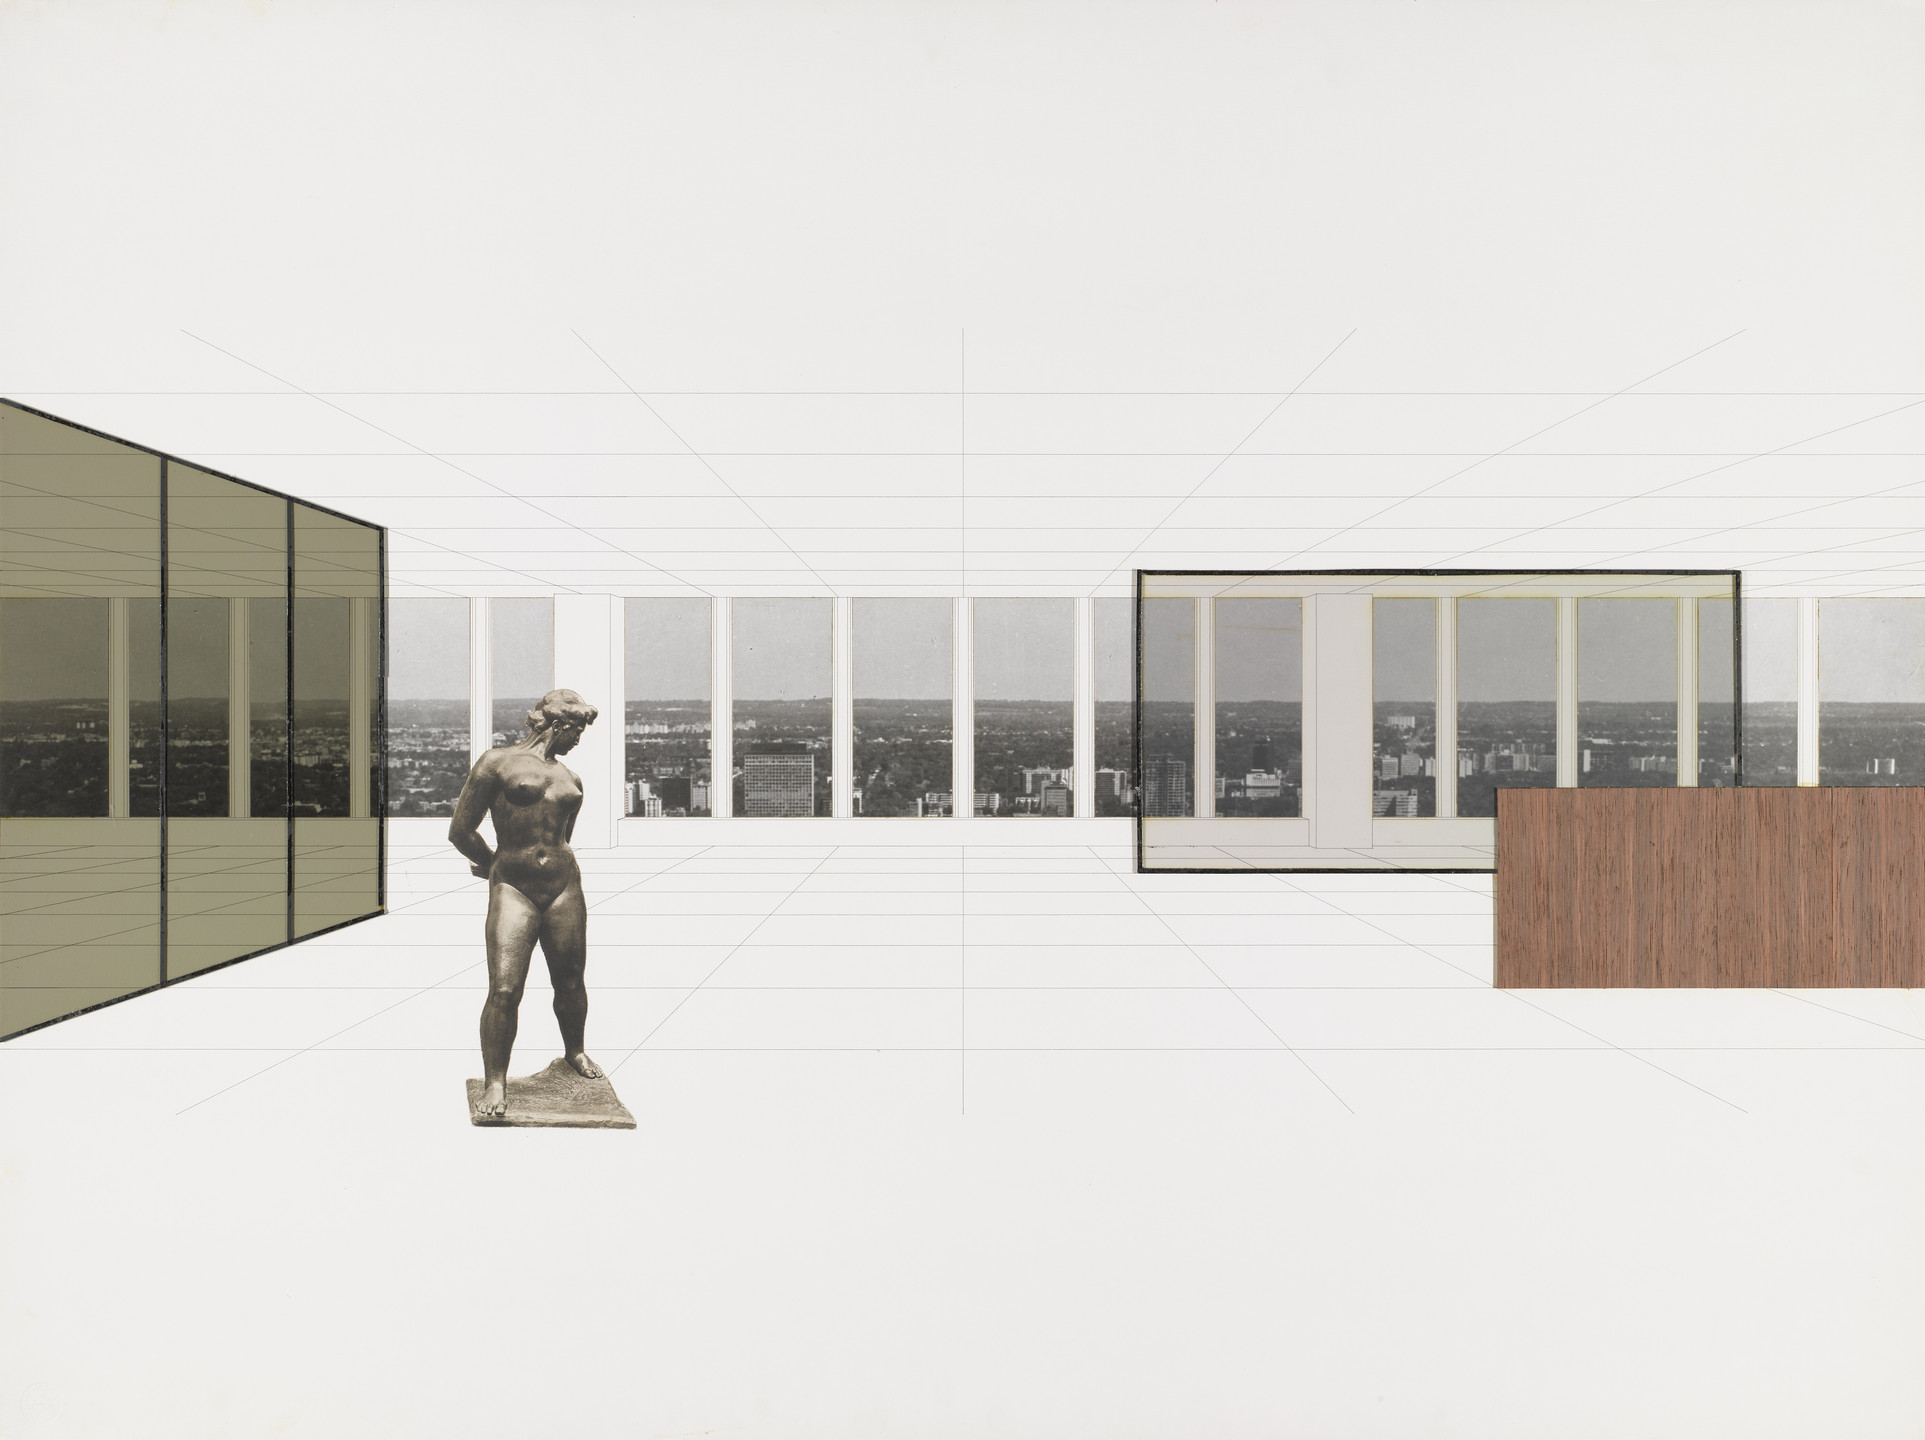 Ludwig Mies van der Rohe. Georg Schaefer Museum Project, Schweinfurt, Germany (Interior perspective with view of site). 1960–1963